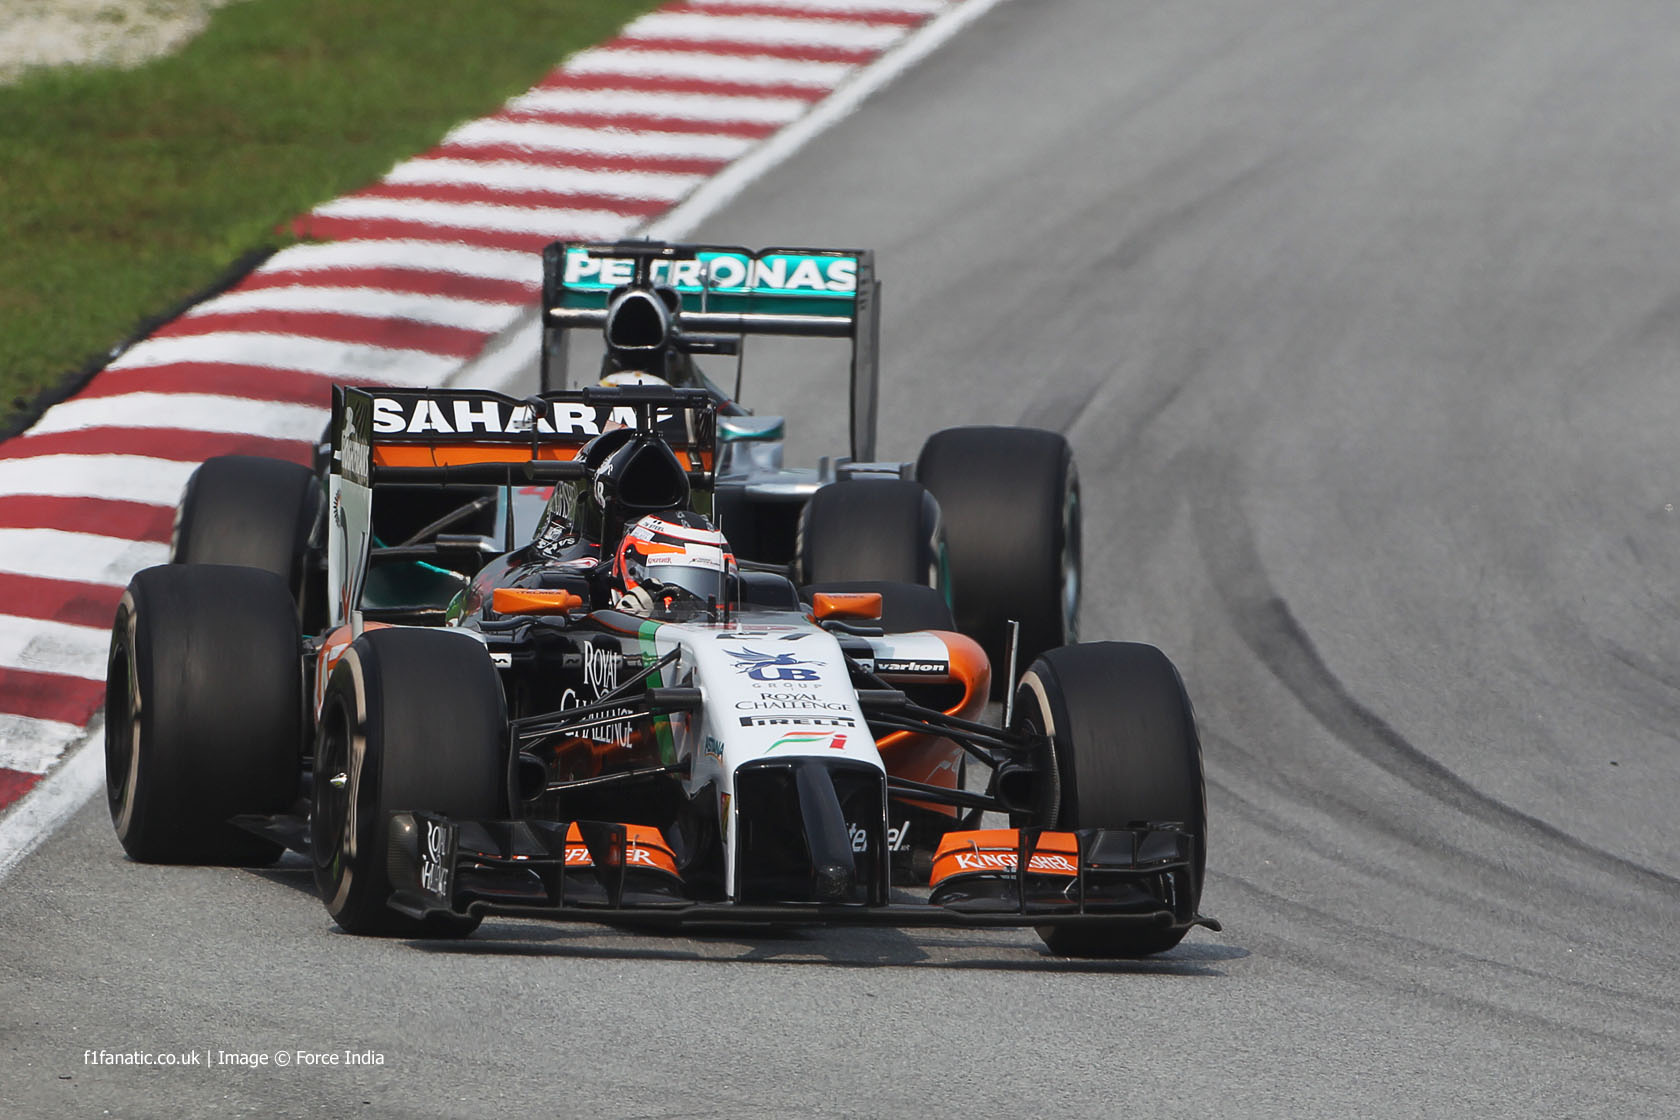 Nico Hulkenberg, Force India, Sepang International Circuit, 2014